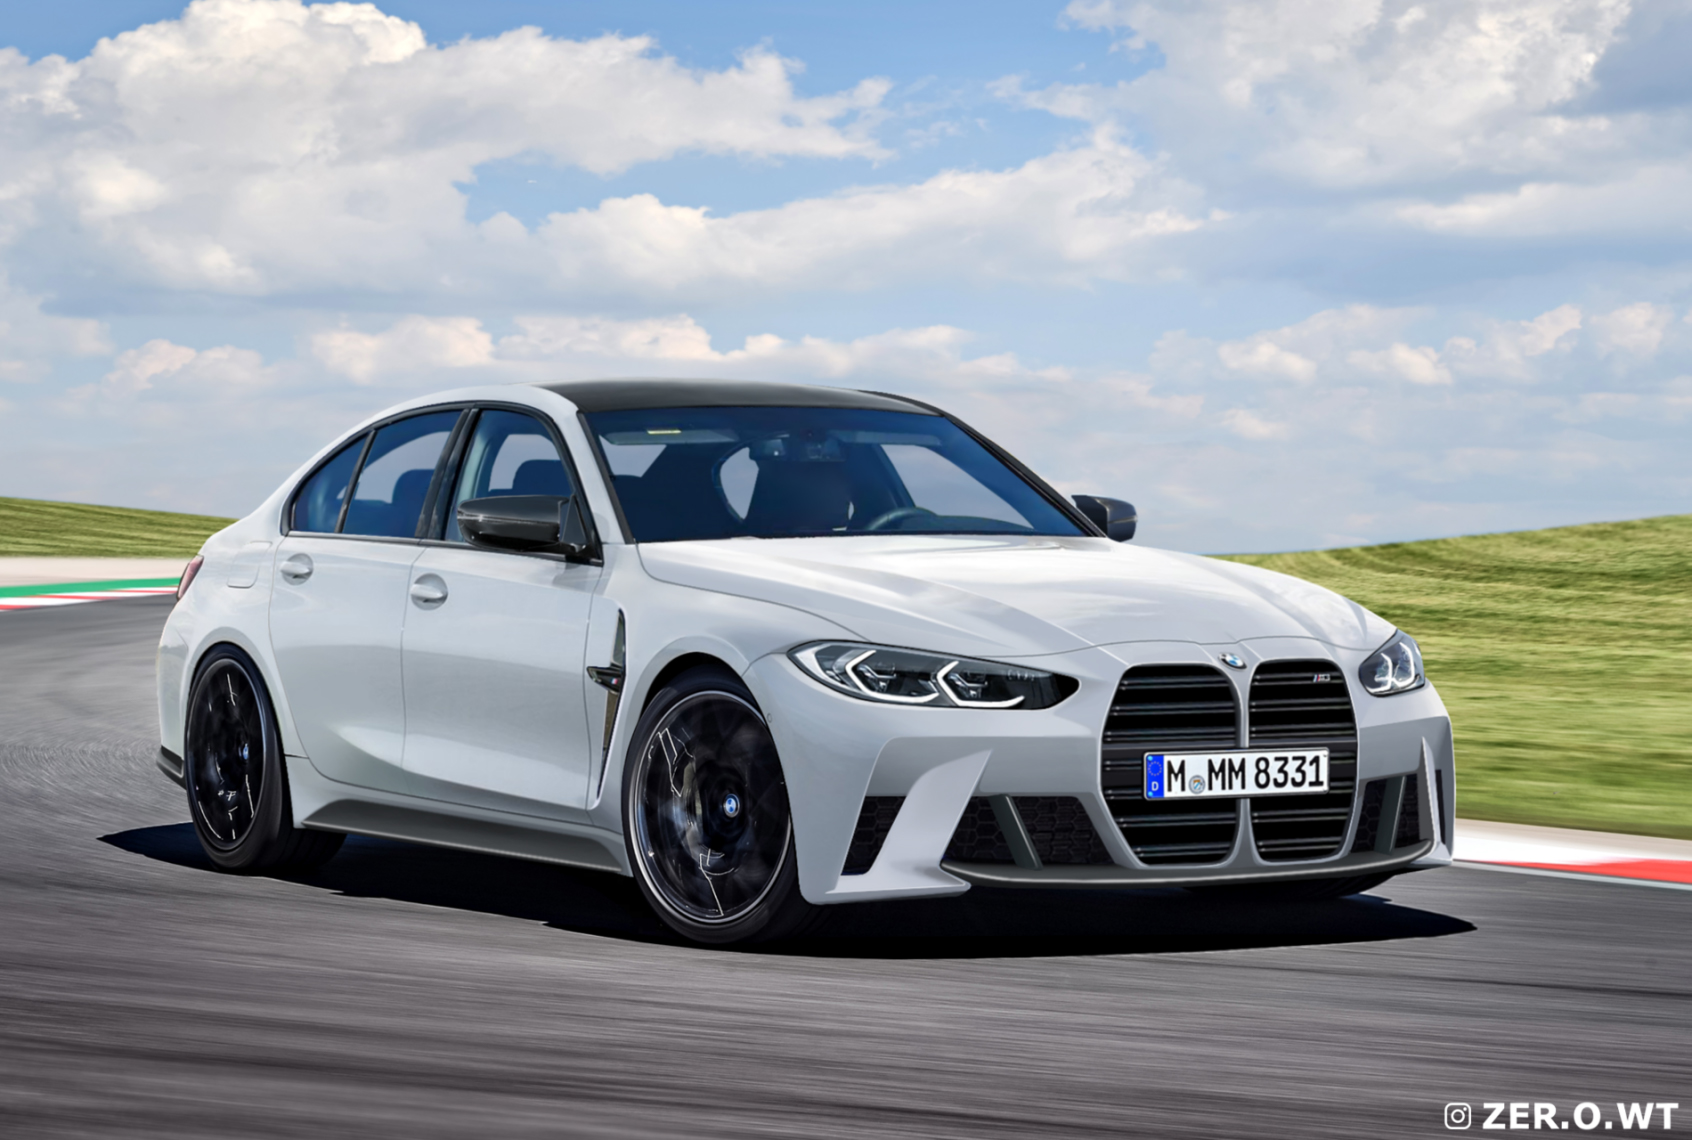 New Bmw M3 G80 And M4 G82 Will Be Unveiled In September 2020 Excessivelocity Com The Ultimate Car And Motor Sports Blog